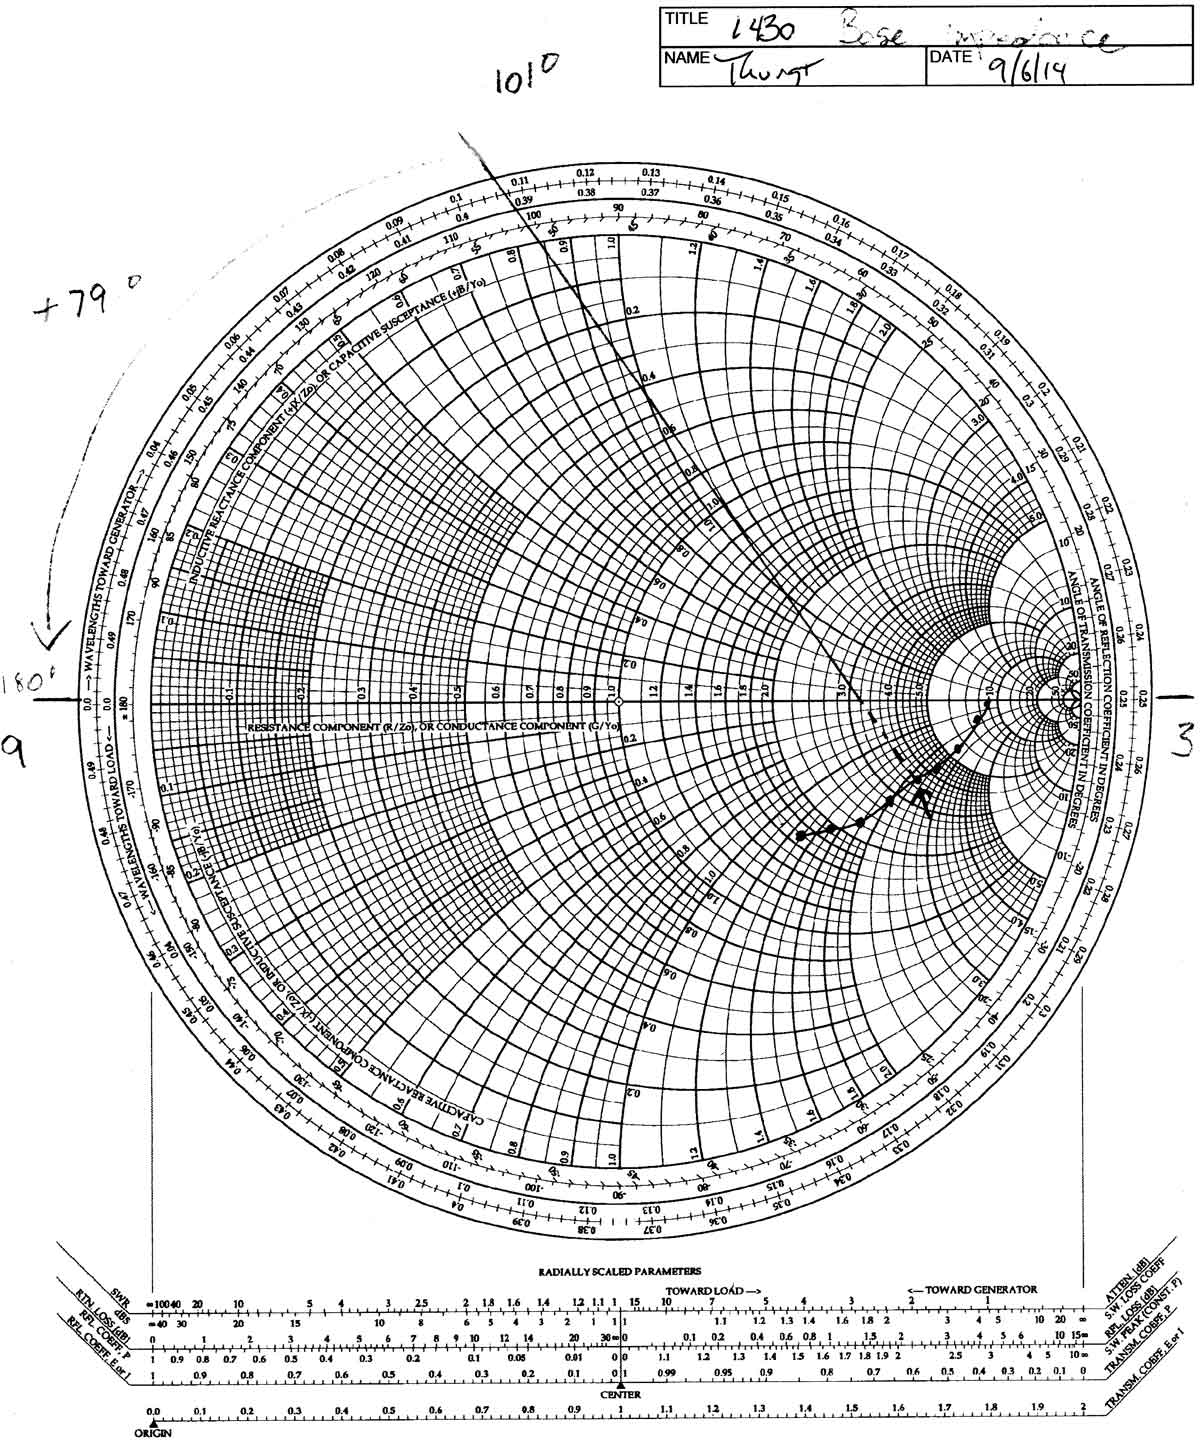 1430-smith-chart